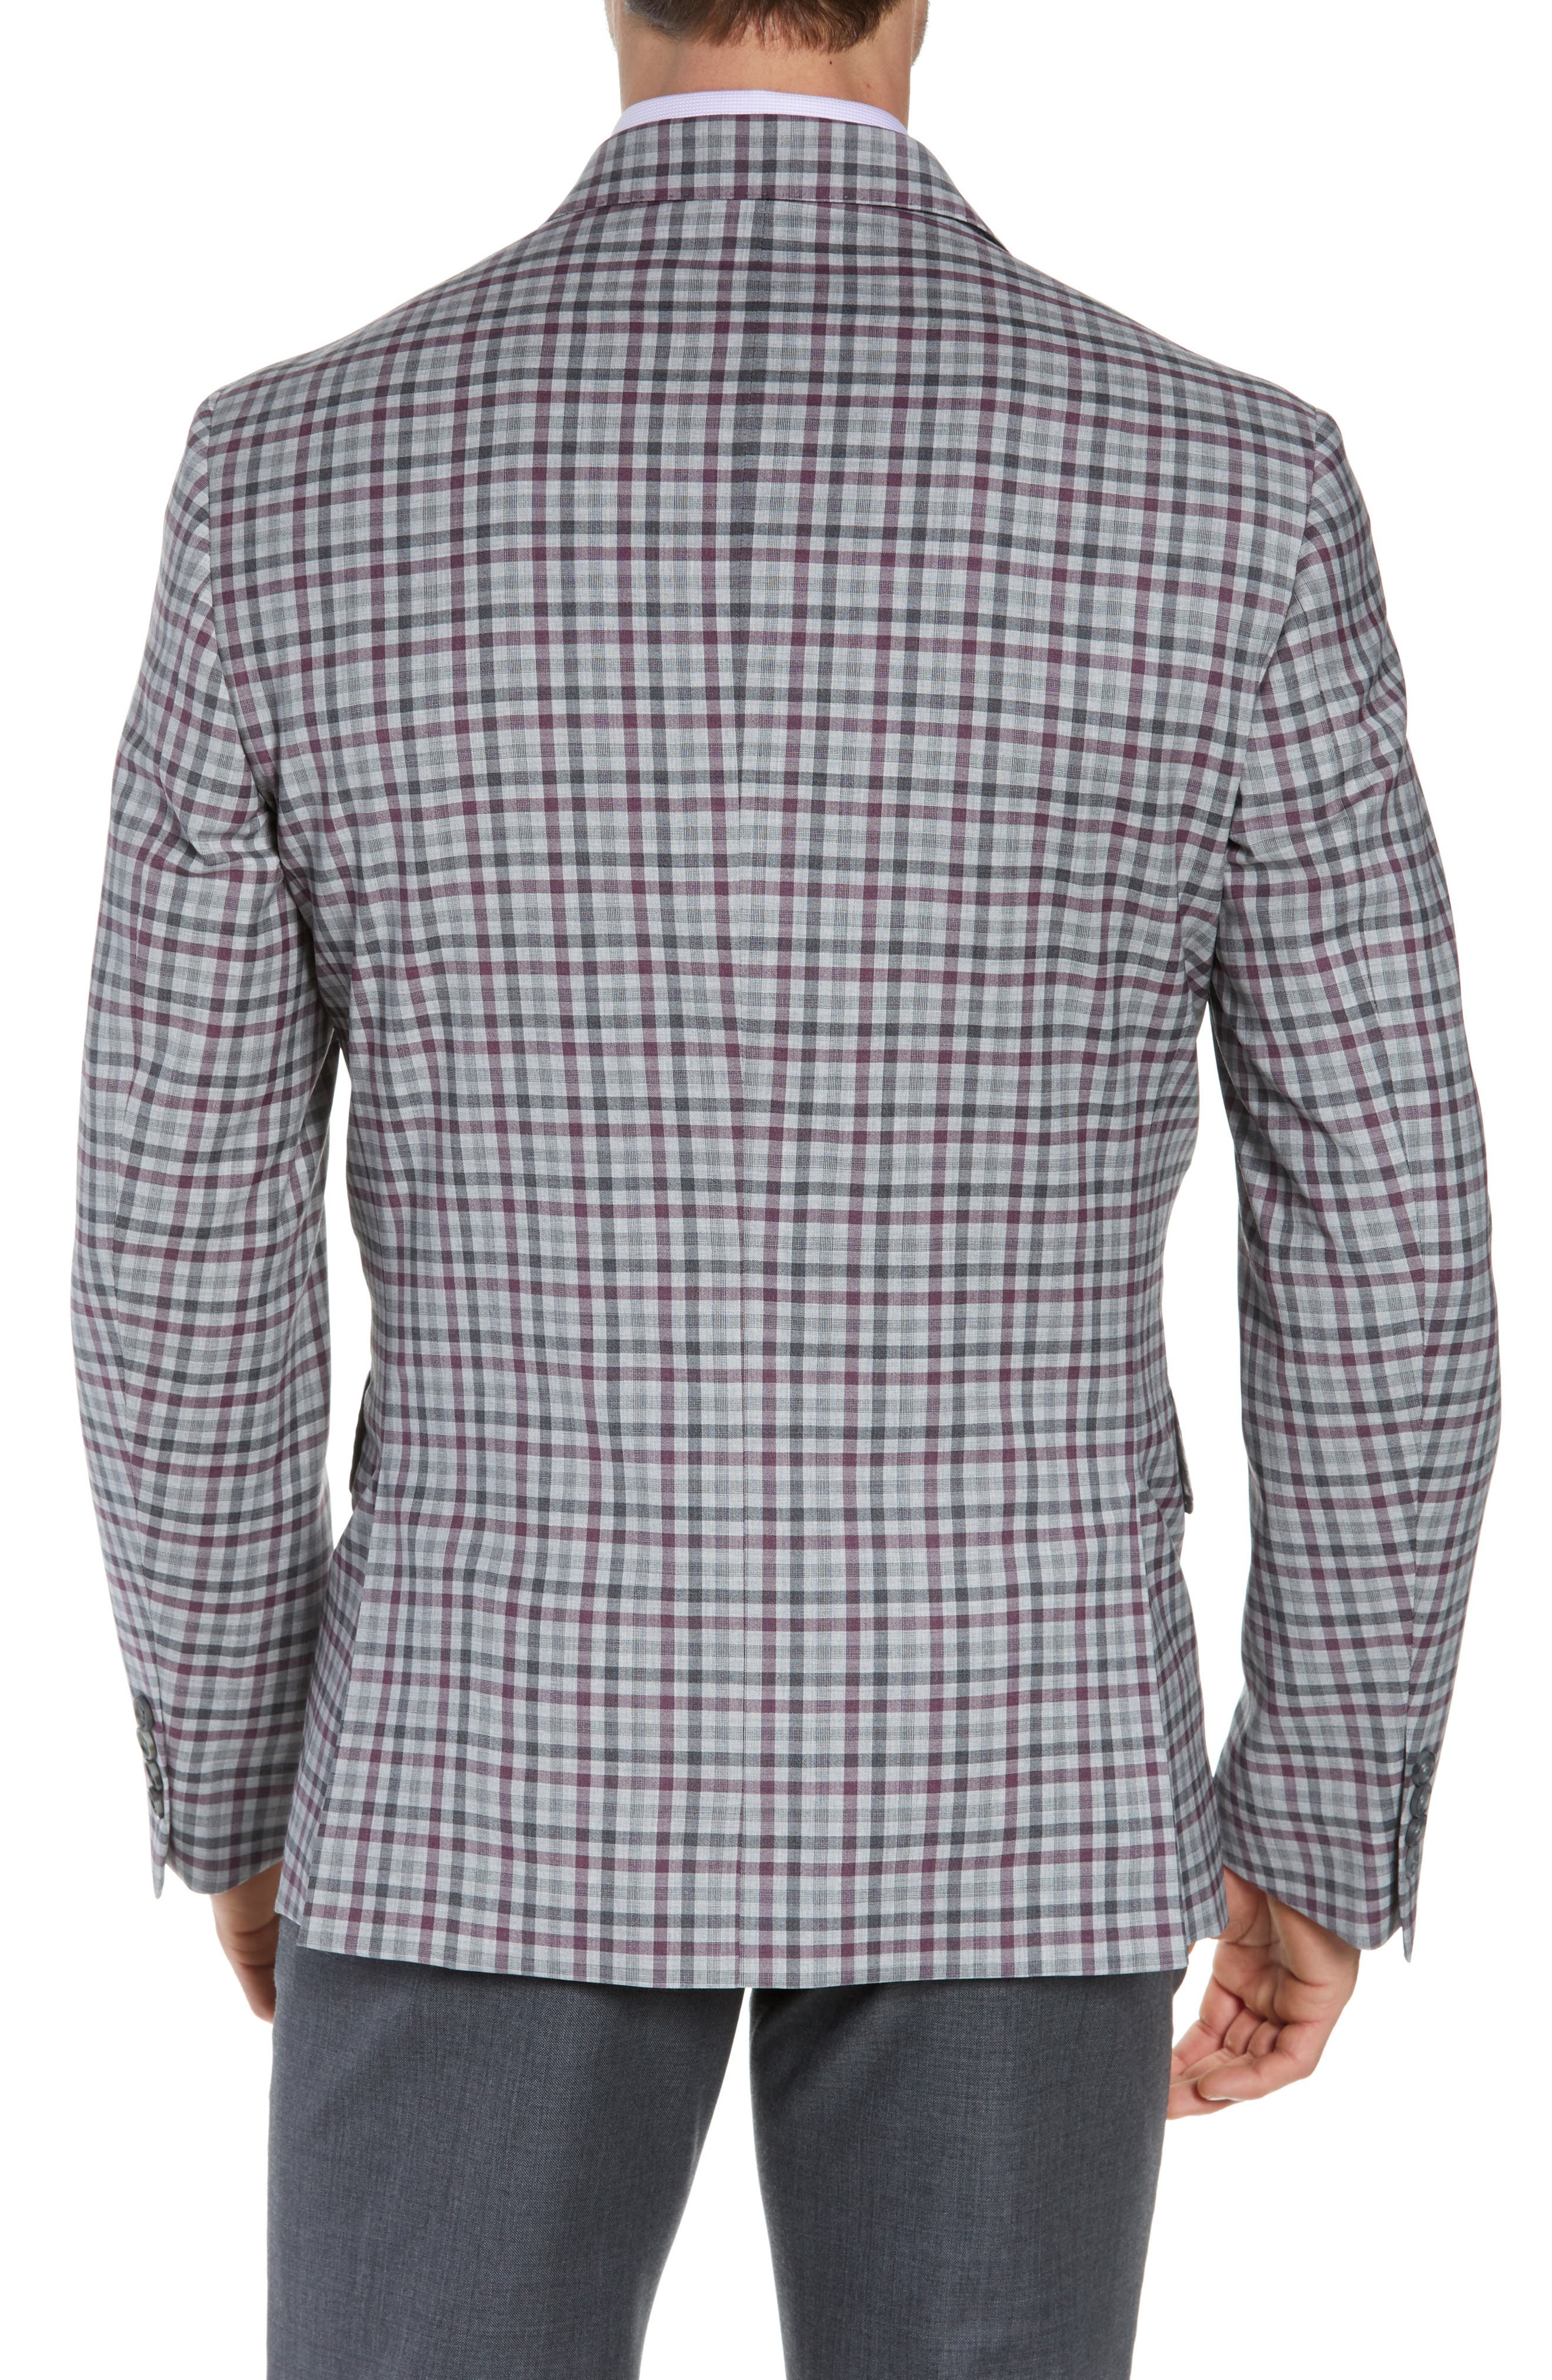 JOHN W. NORDSTROM<SUP>®</SUP>, Traditional Fit Check Sport Coat, Alternate thumbnail 2, color, GREY ALLOY BURGUNDY PLAID